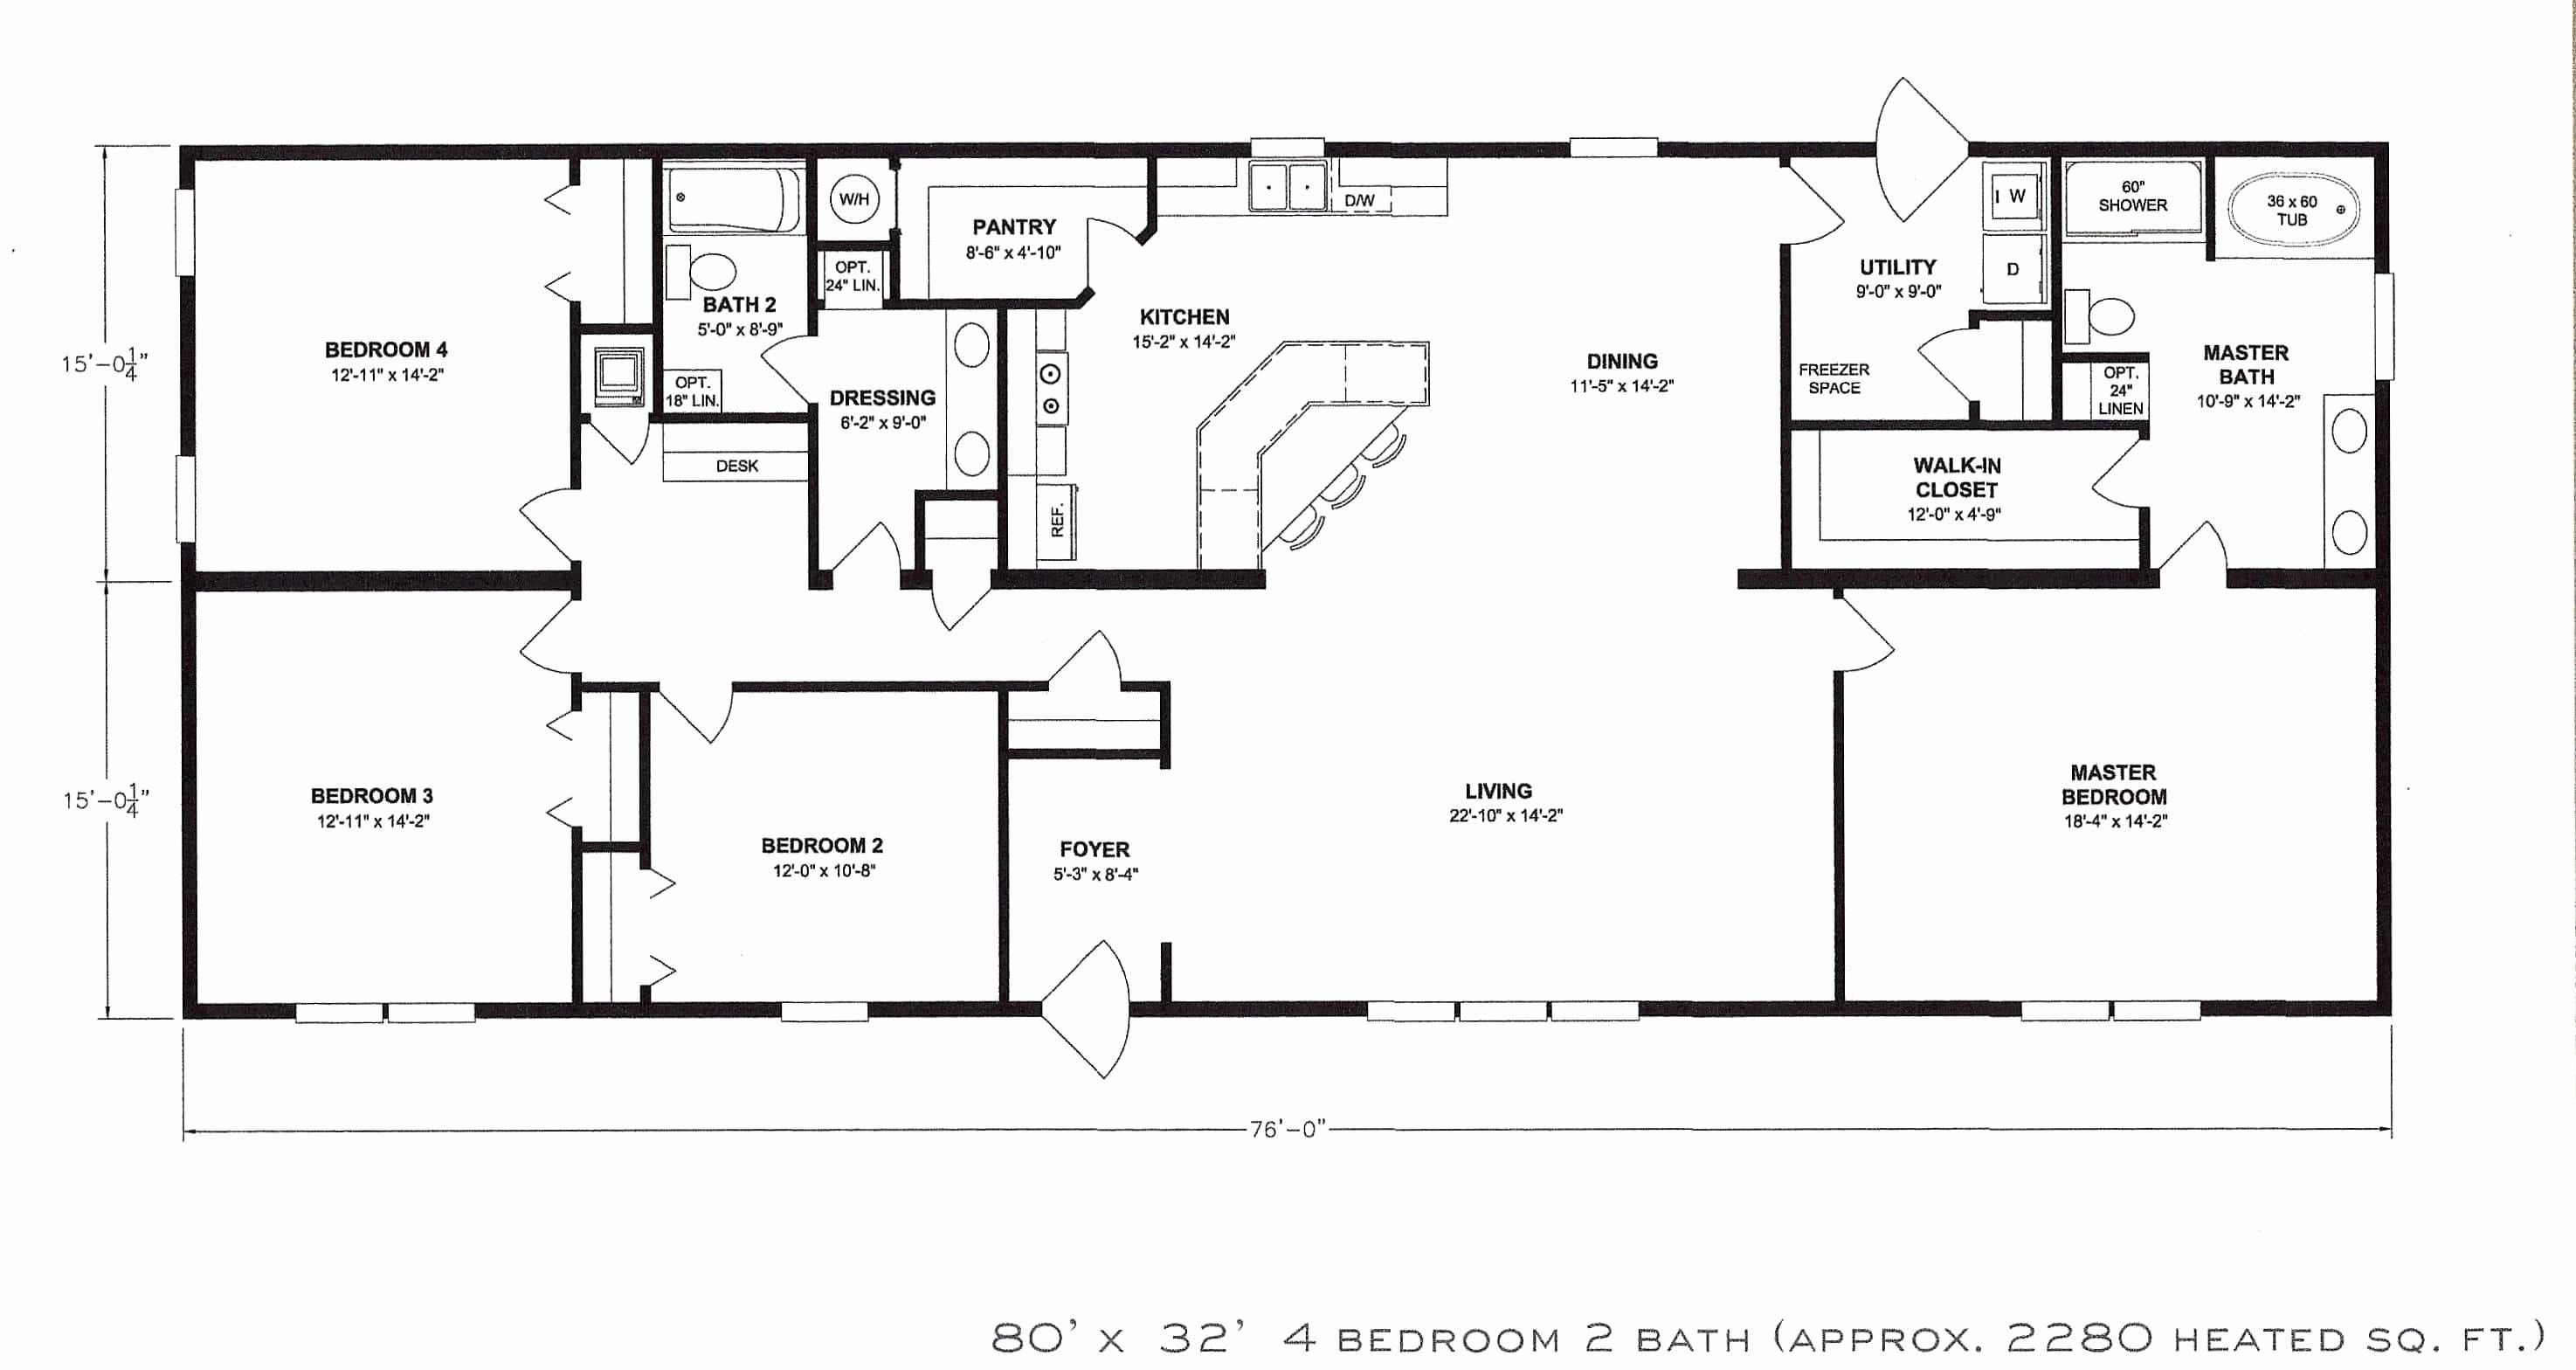 Image result for ranch style open floor plans | Loft floor ... on simple floor plan loft, ranch house farm, barn loft, bedroom floor home plan with loft, floor plans 2 bedroom loft, the country loft,